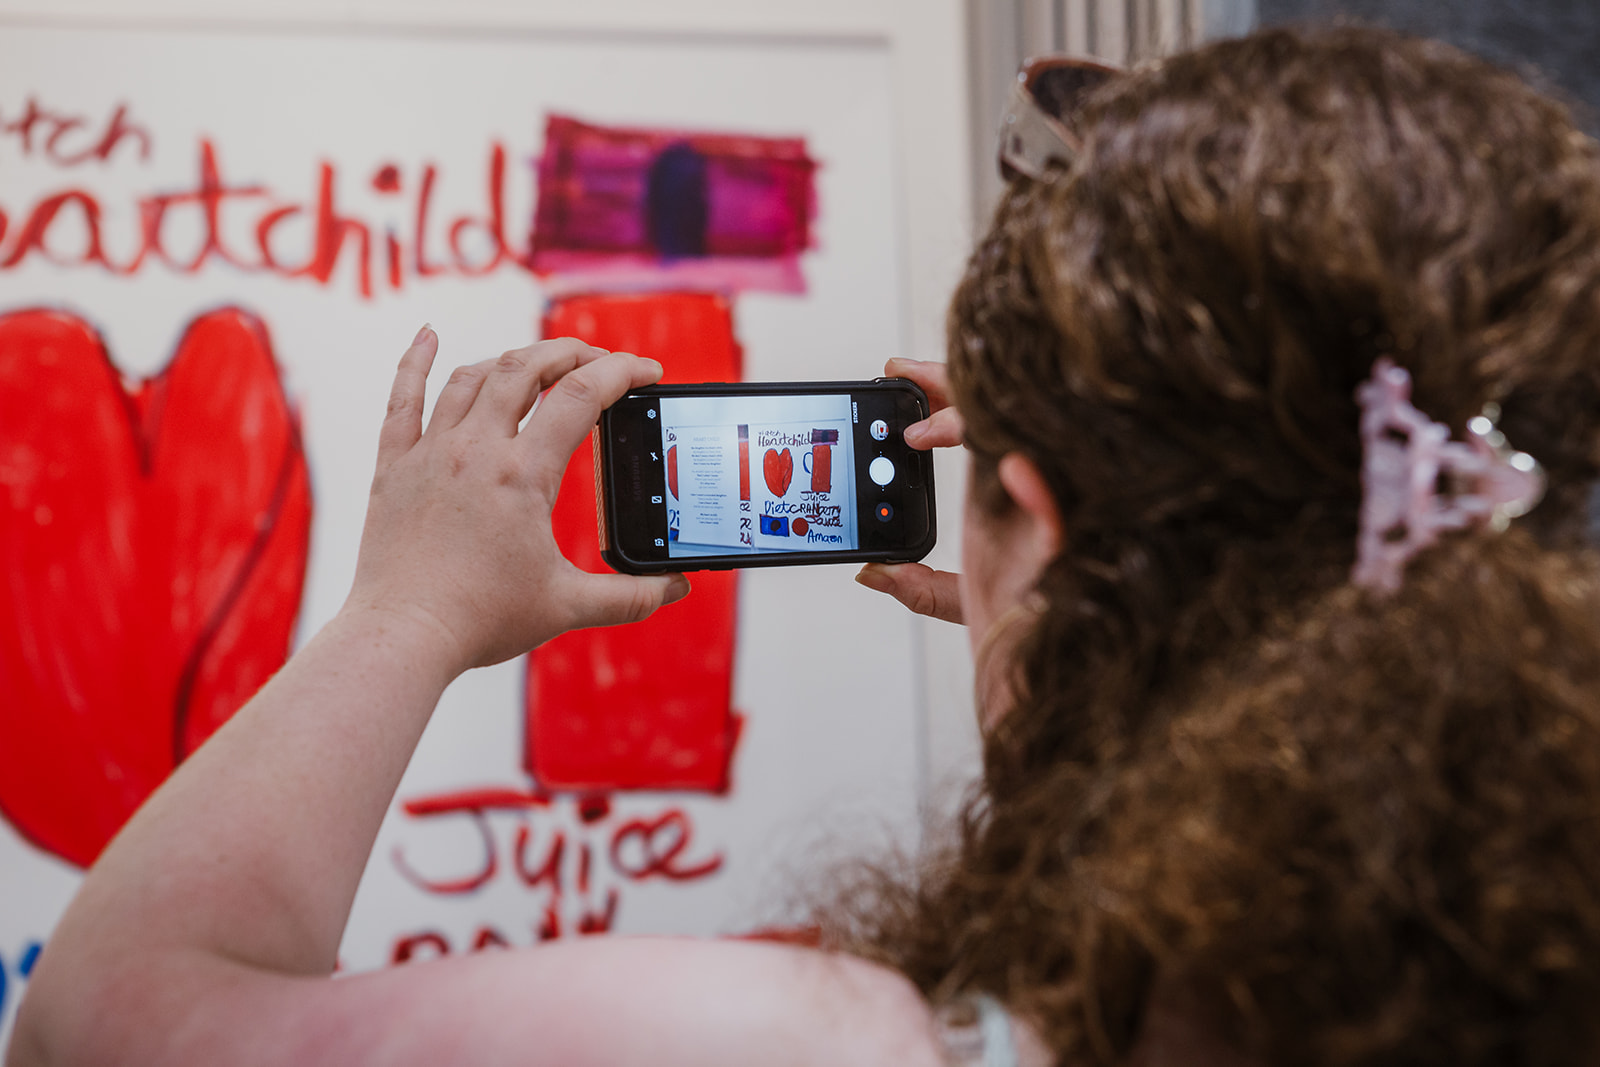 A visitor takes a Smartphone photo of Teresa's 'Heart Child' artwork at the opening of Born to Represent. Photo: This Is It Studios.